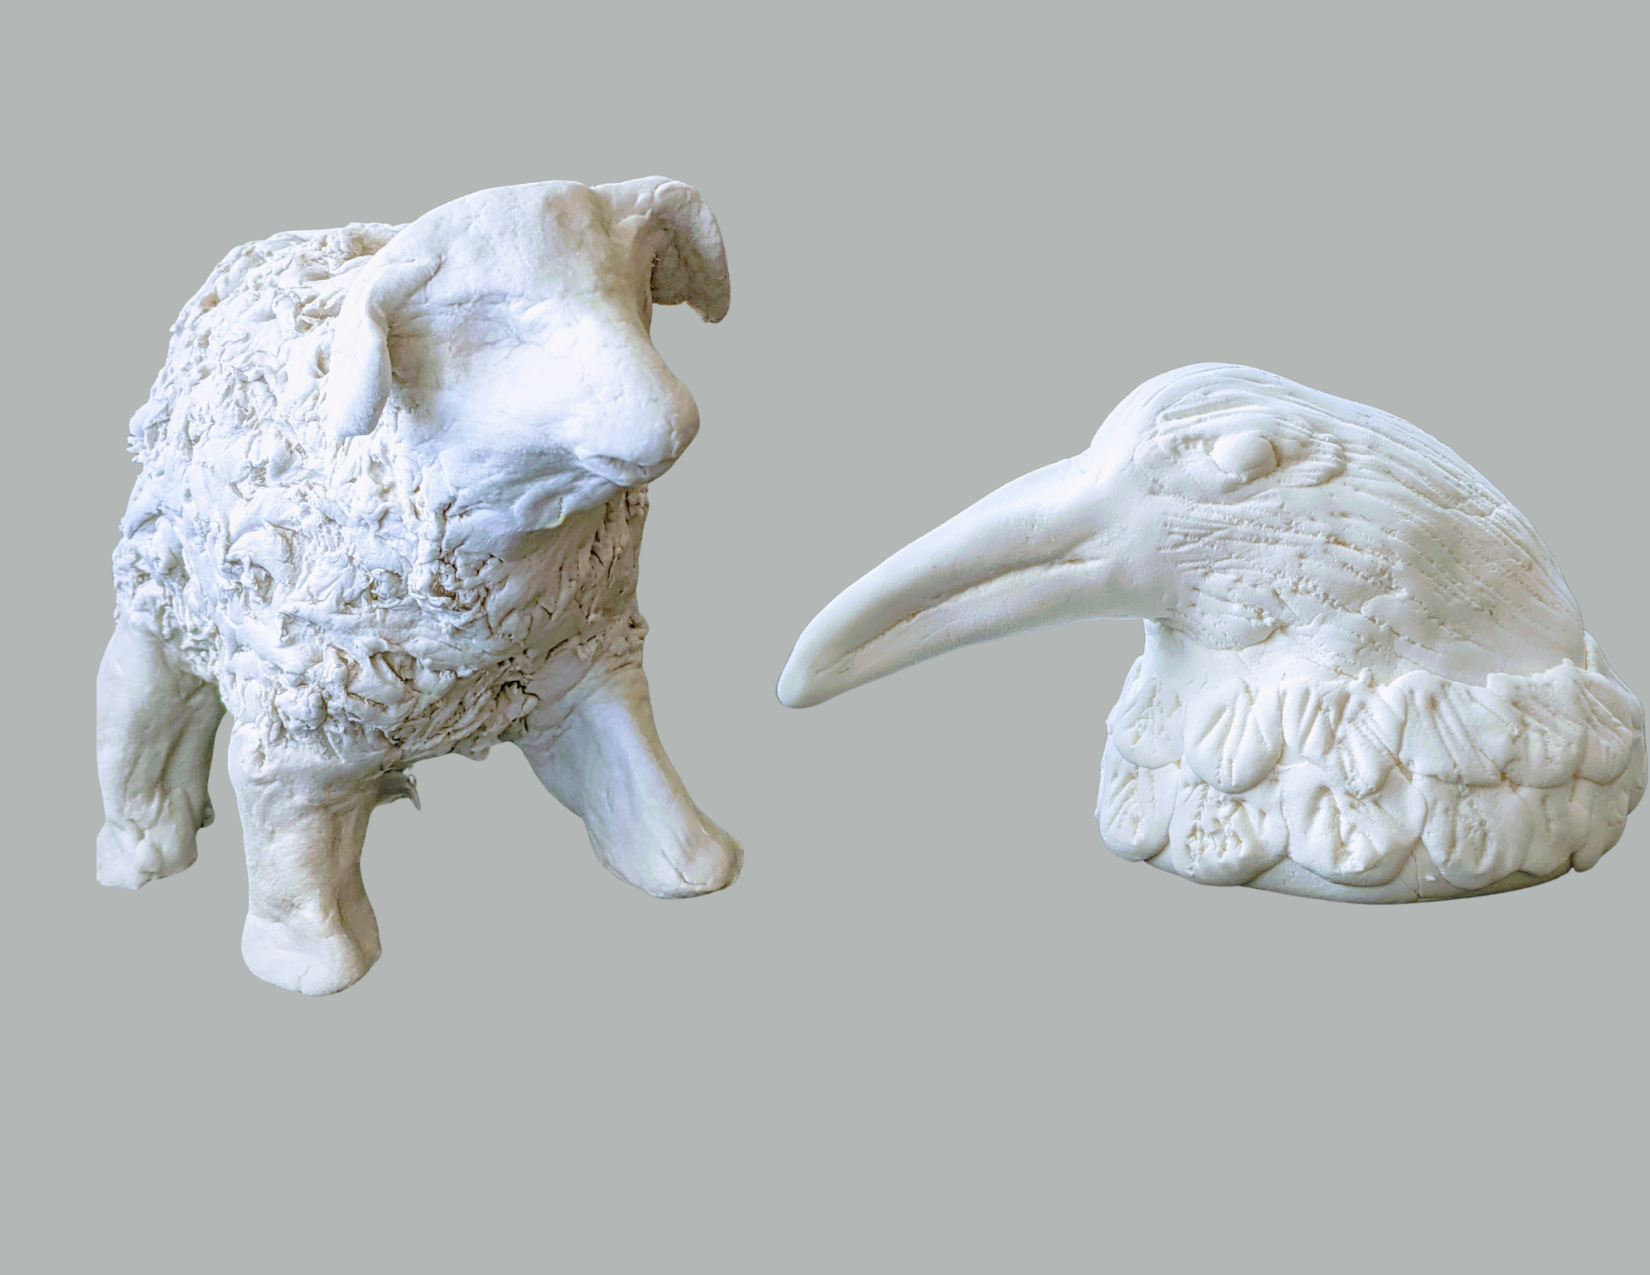 Clay sculpture of a sheep and bust of a crow